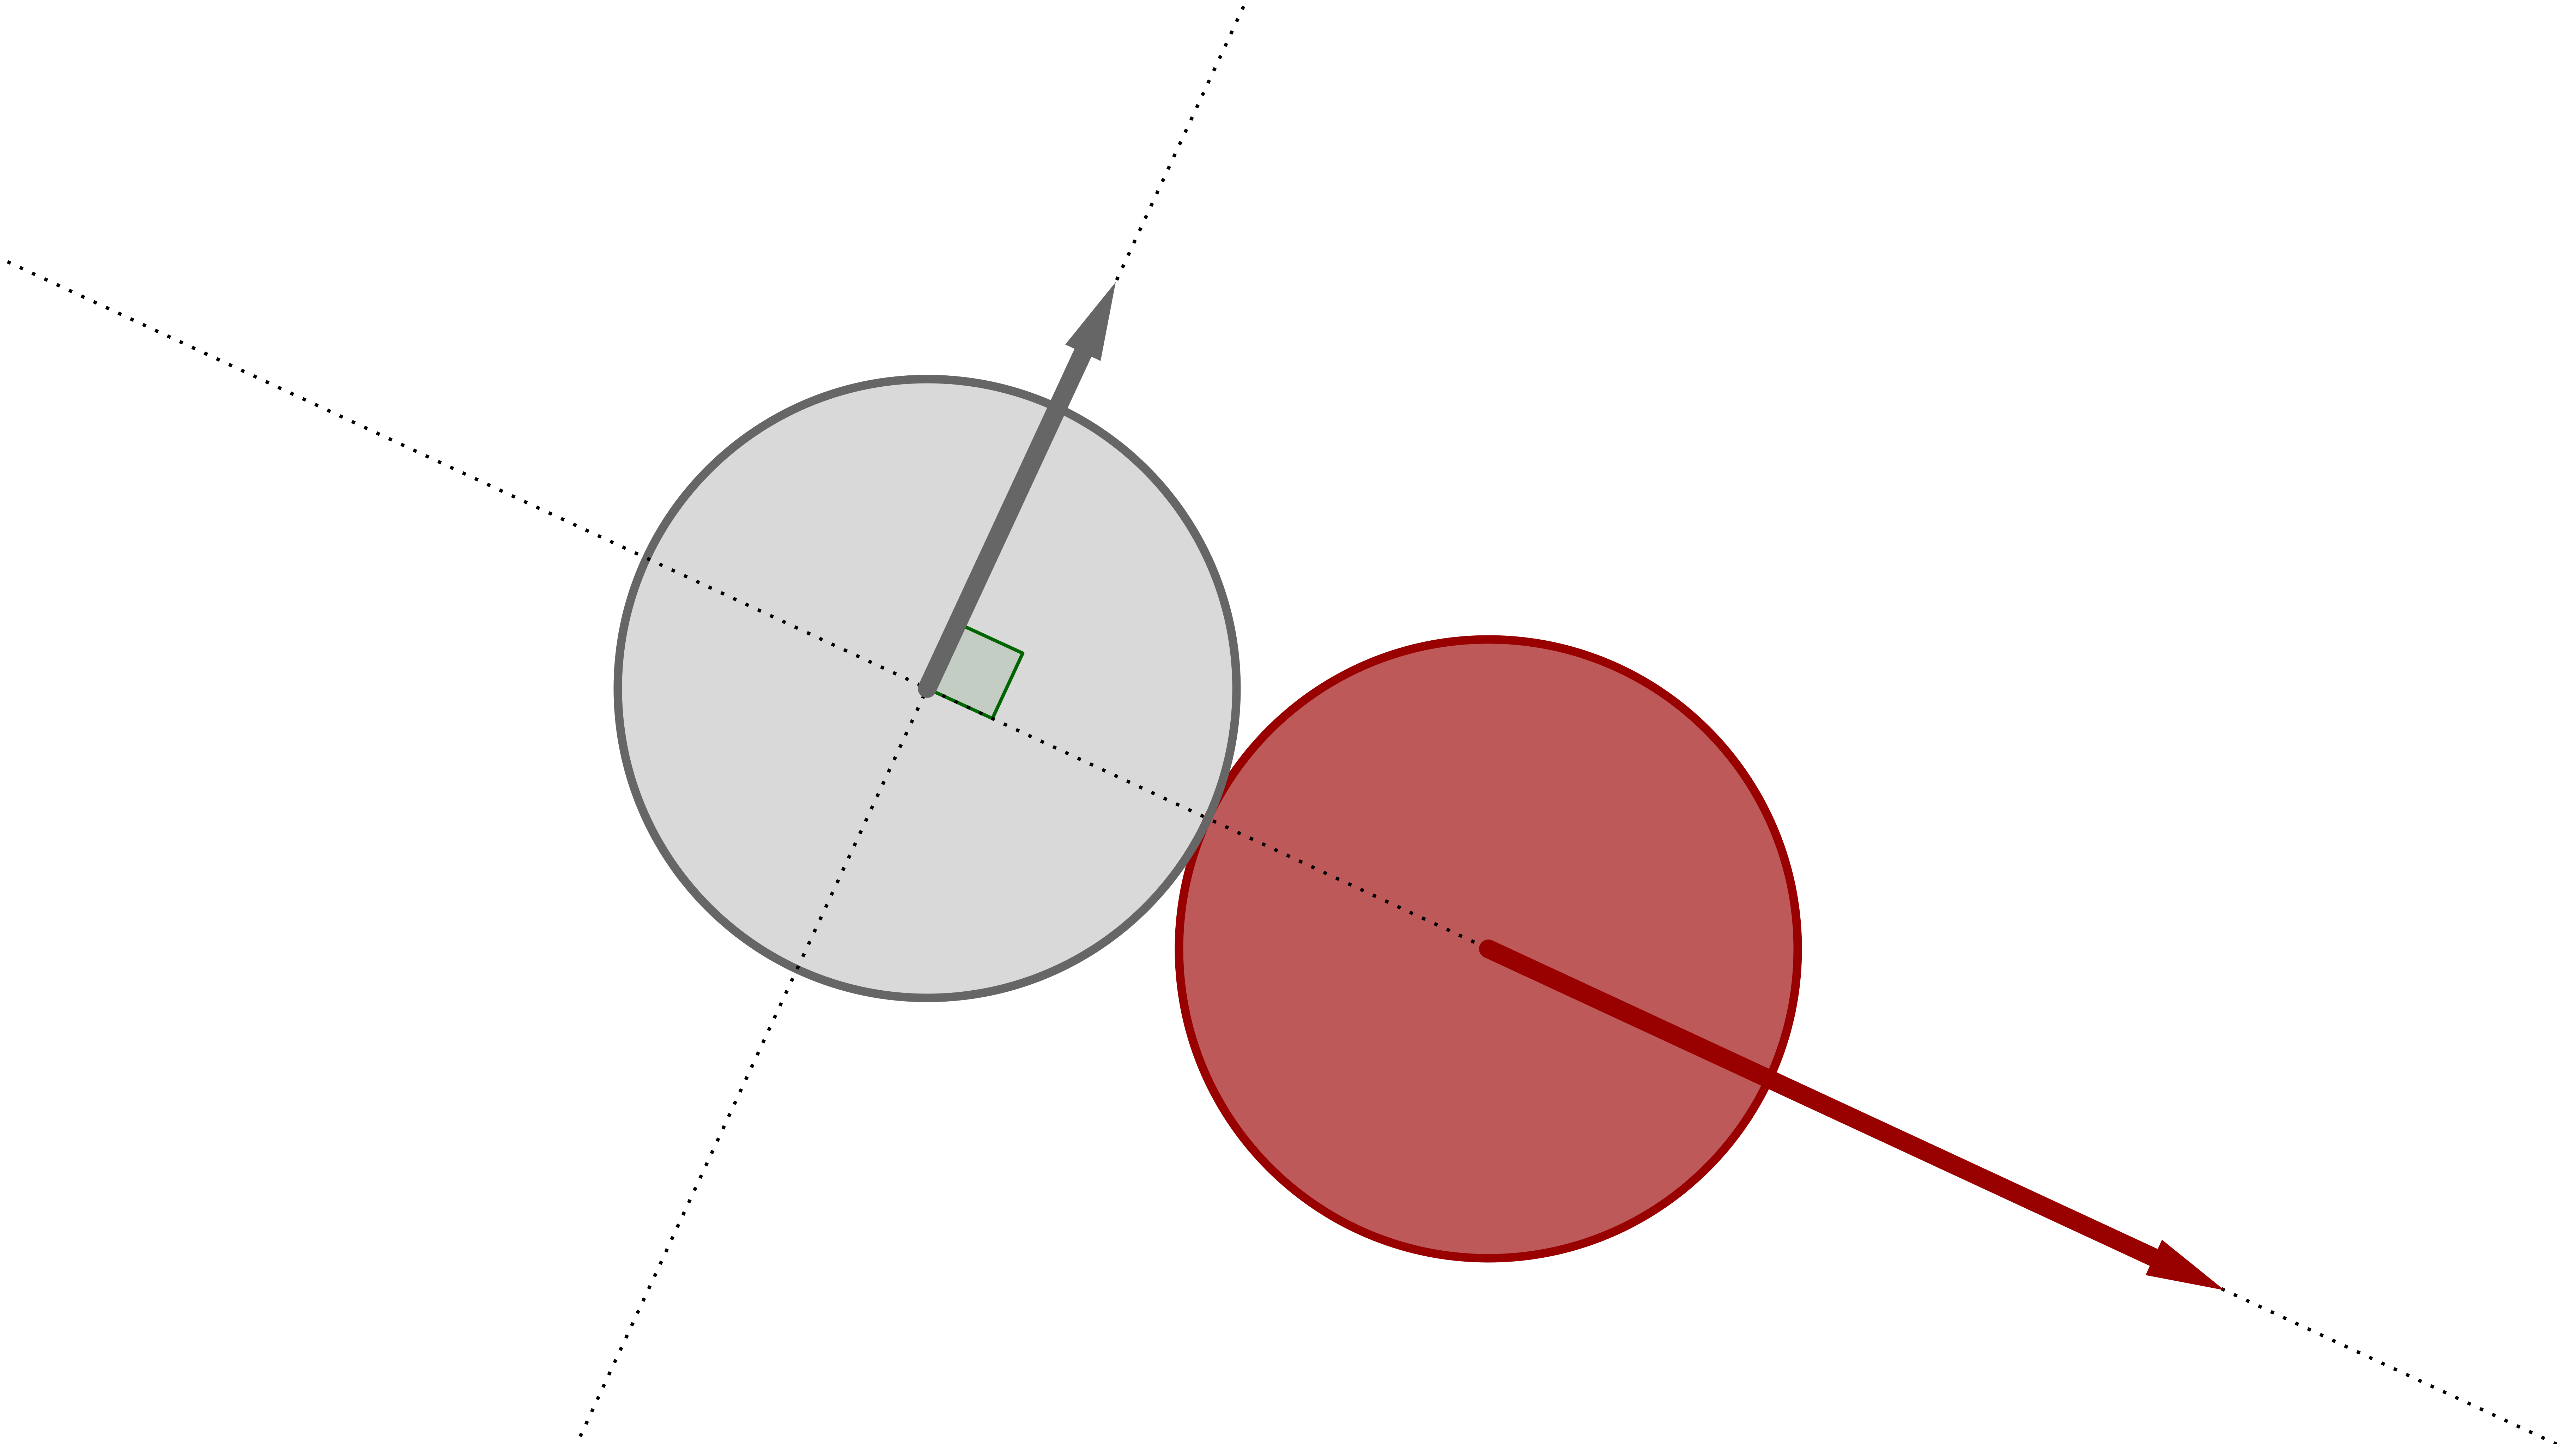 Billiards And The Pythagorean Theorem